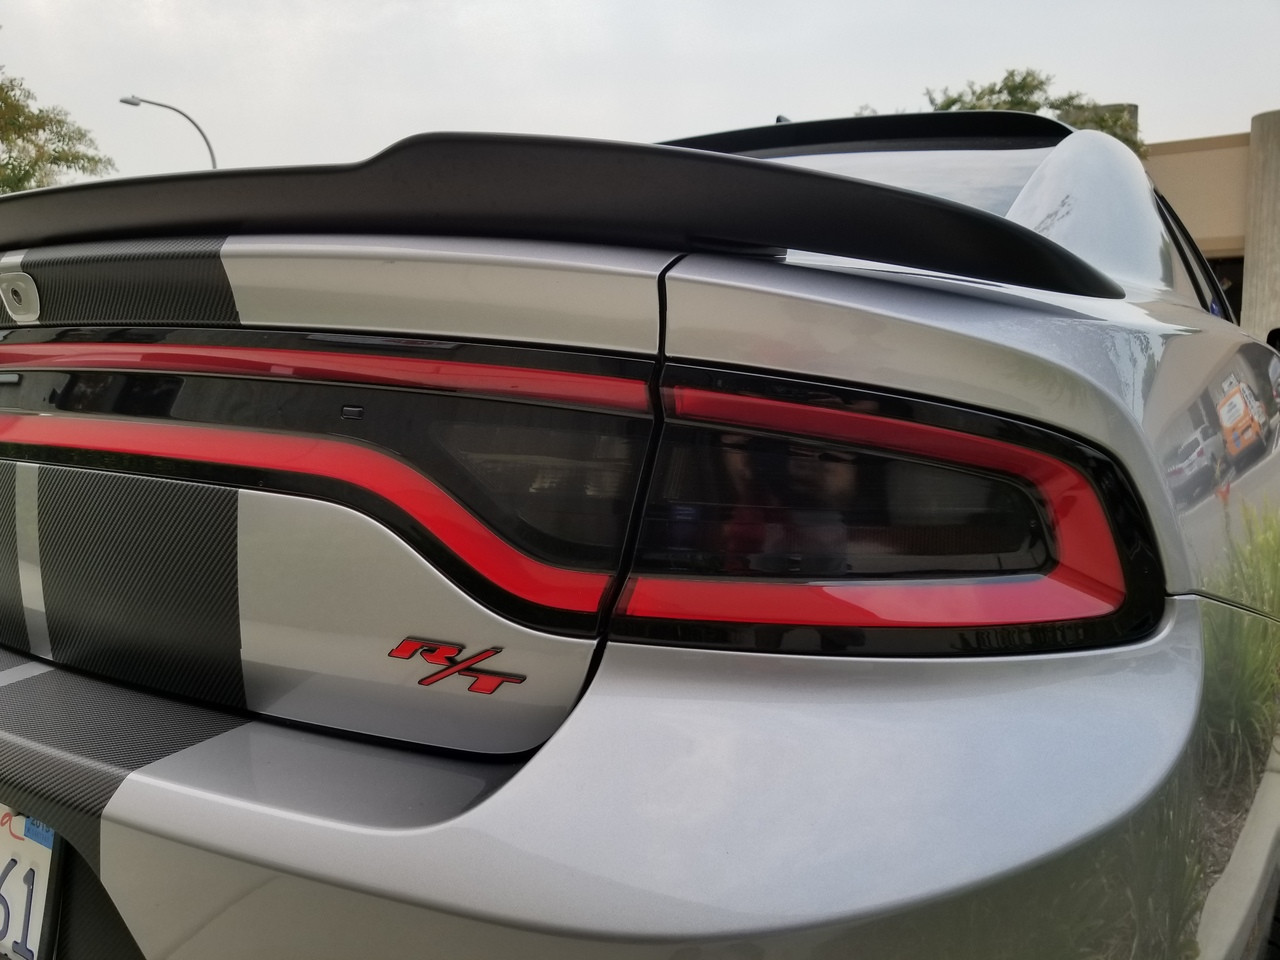 Dodge Charger Tail Lights >> Smoked Tail Light Insert Overlays Tint 15 18 Charger Jdmfv